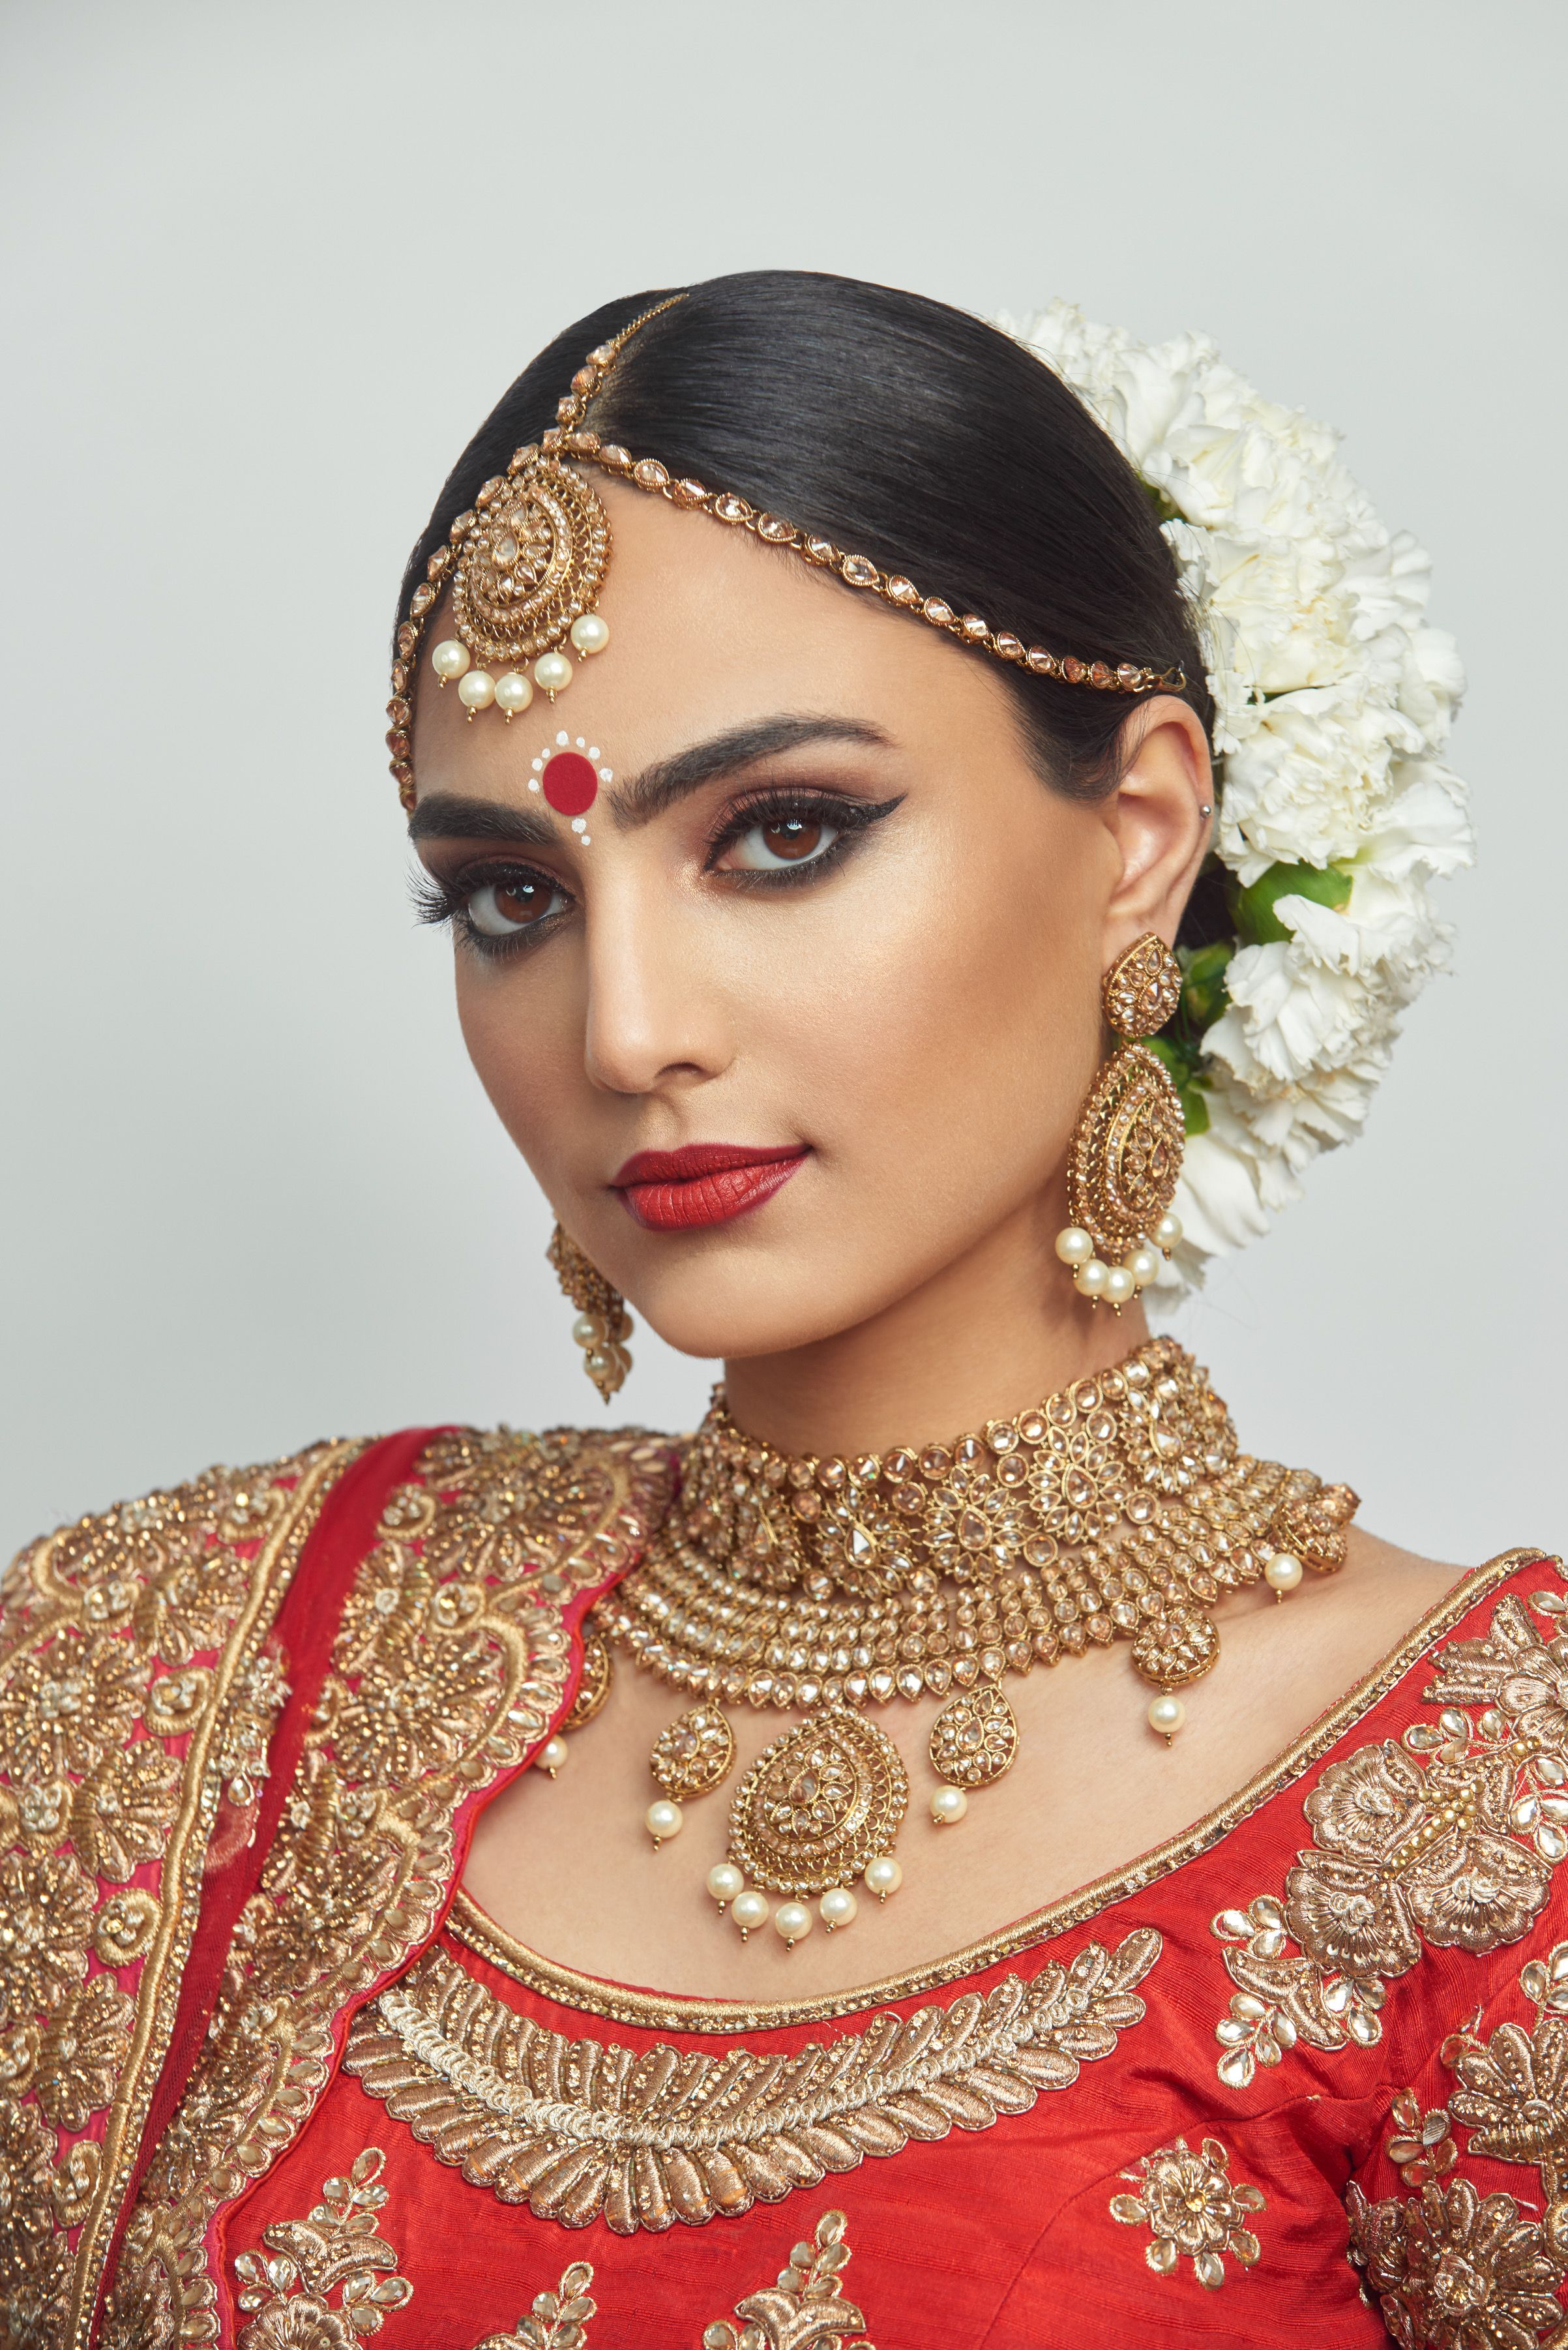 pin by ananya on jewelry and accessories | indian wedding